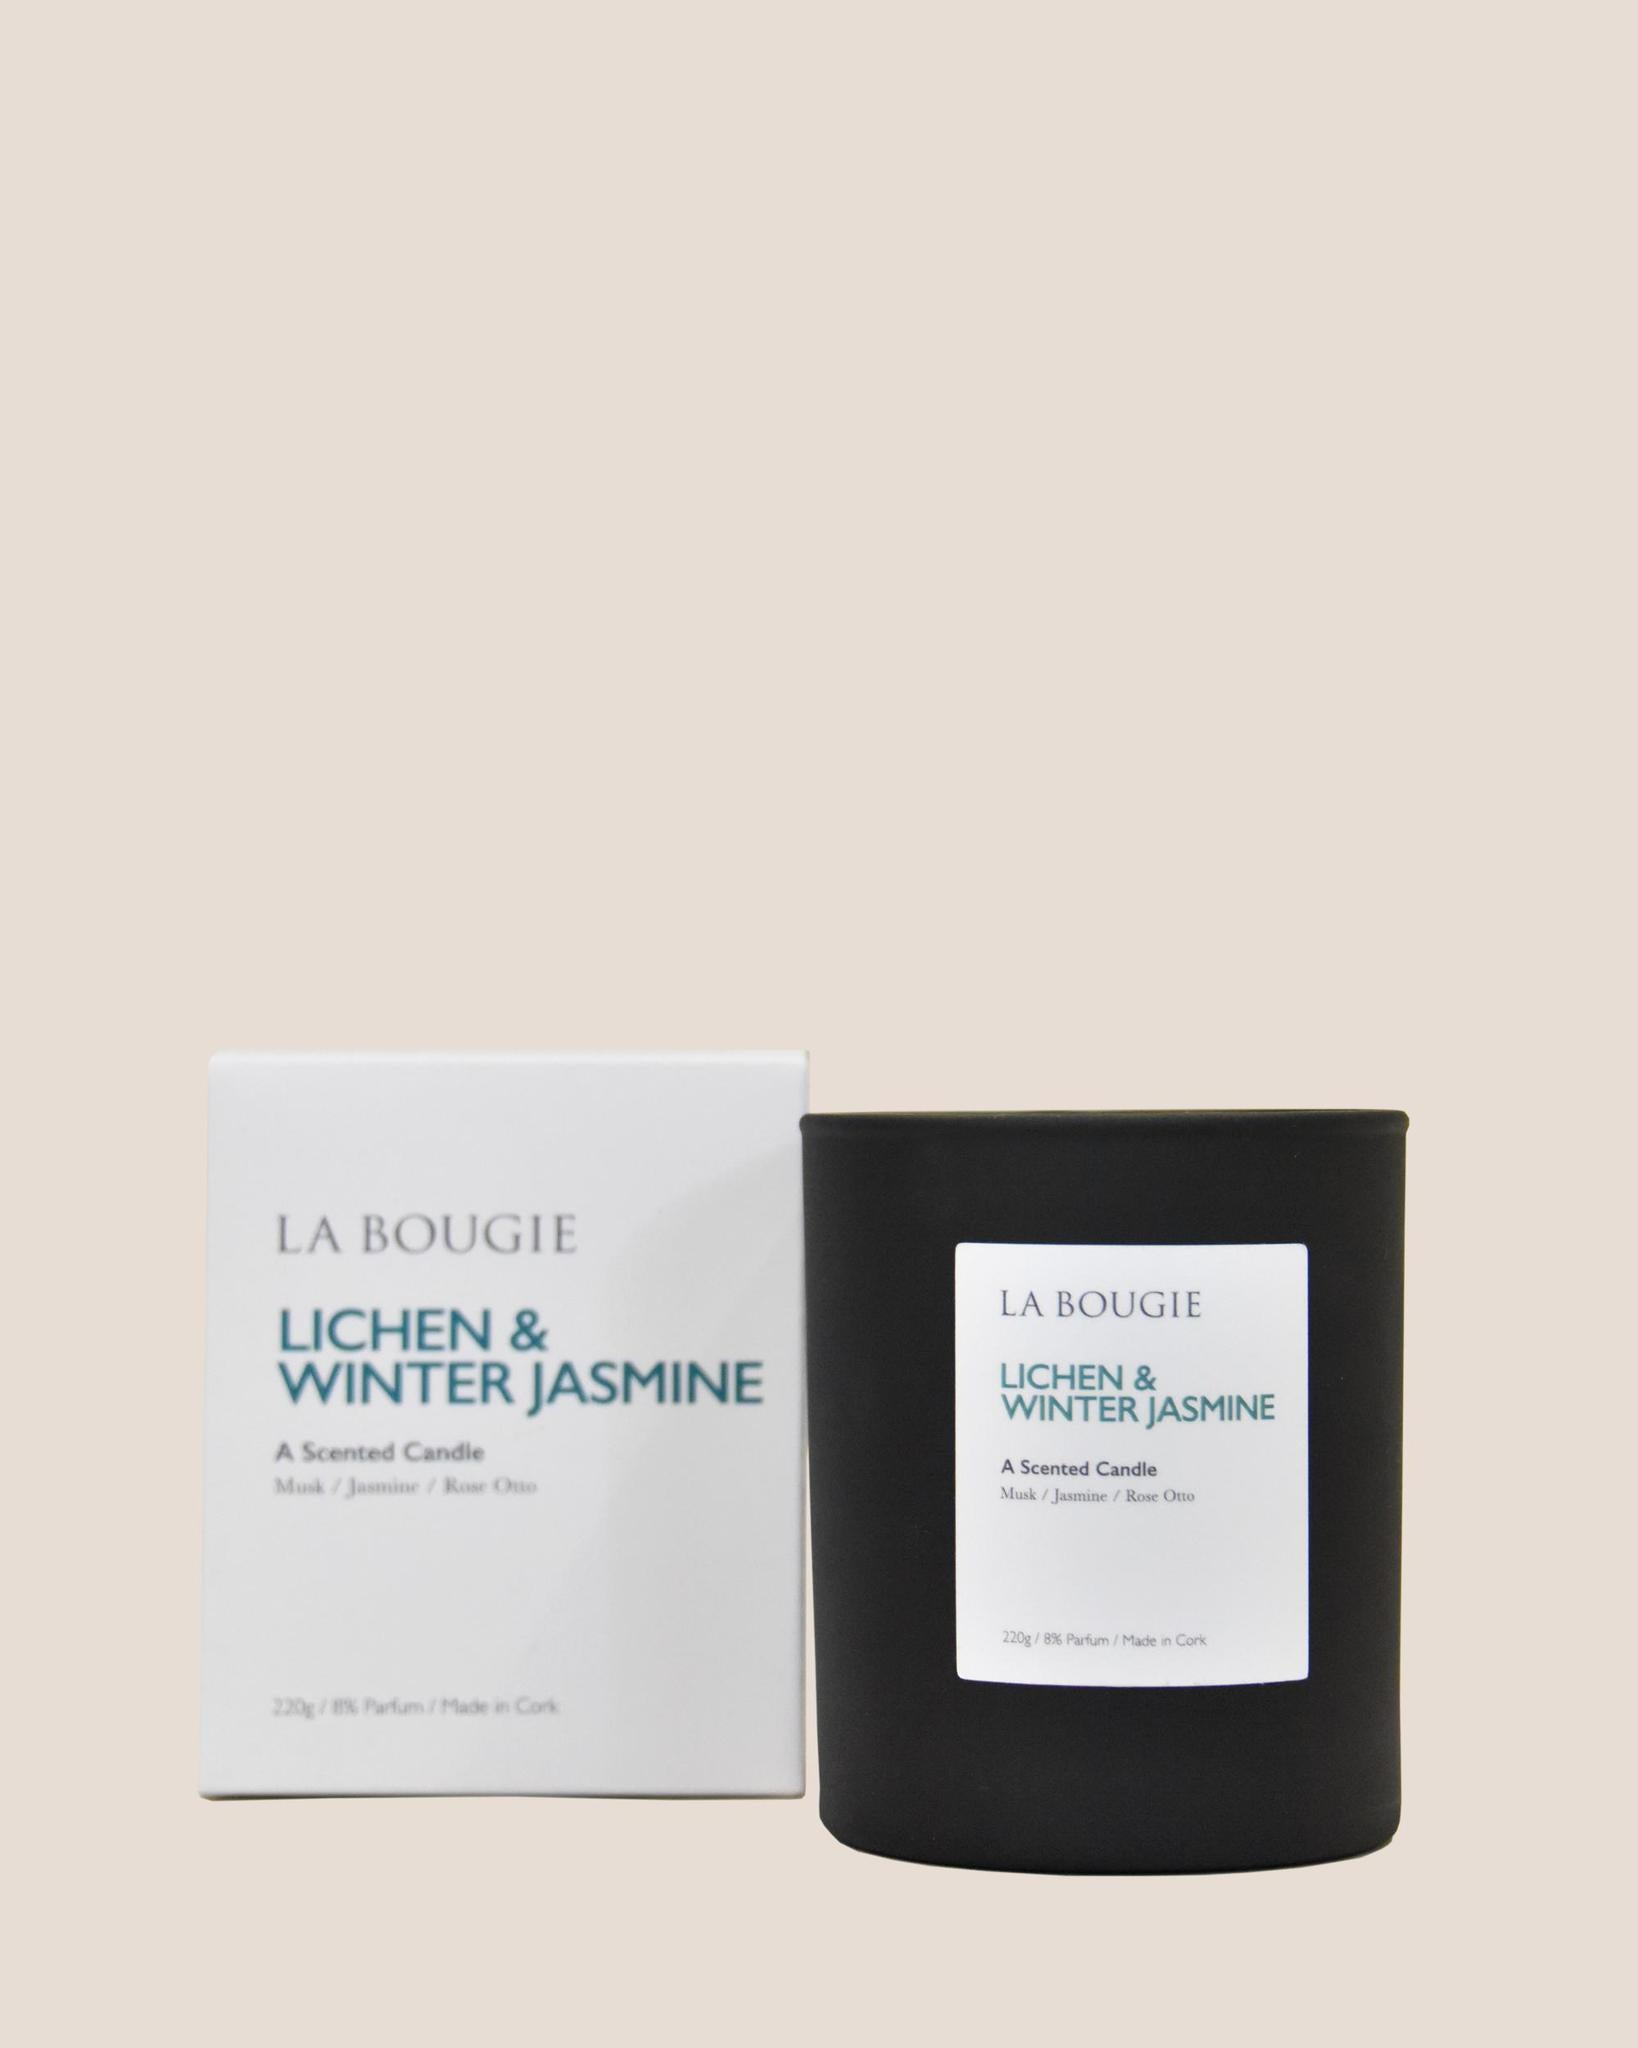 LA BOUGIE Candle / Lichen & Winter Jasmine